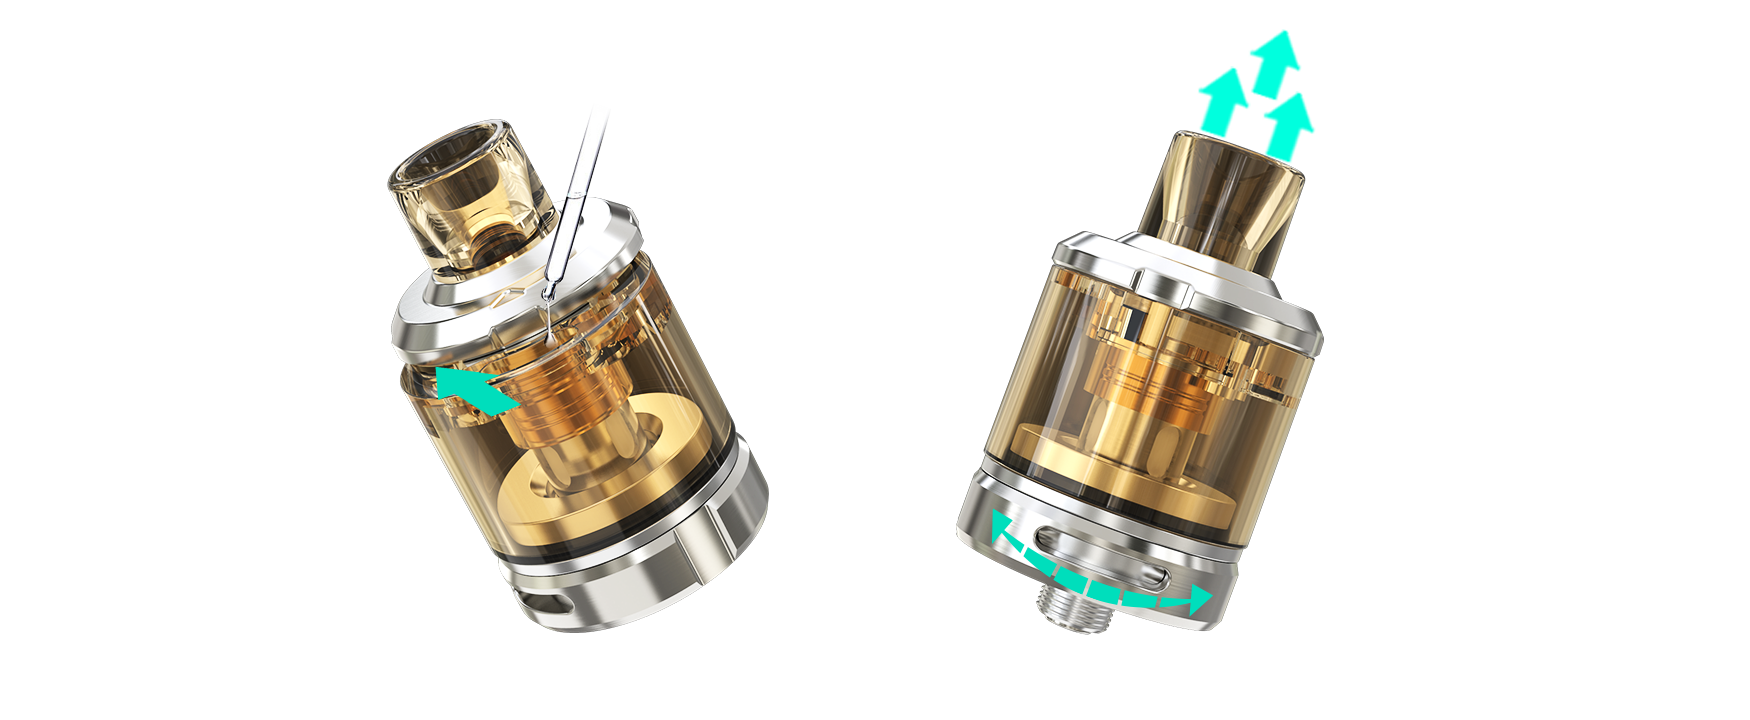 SINUOUS V80 with Amor NSE - Wismec Electronics Co ,Ltd